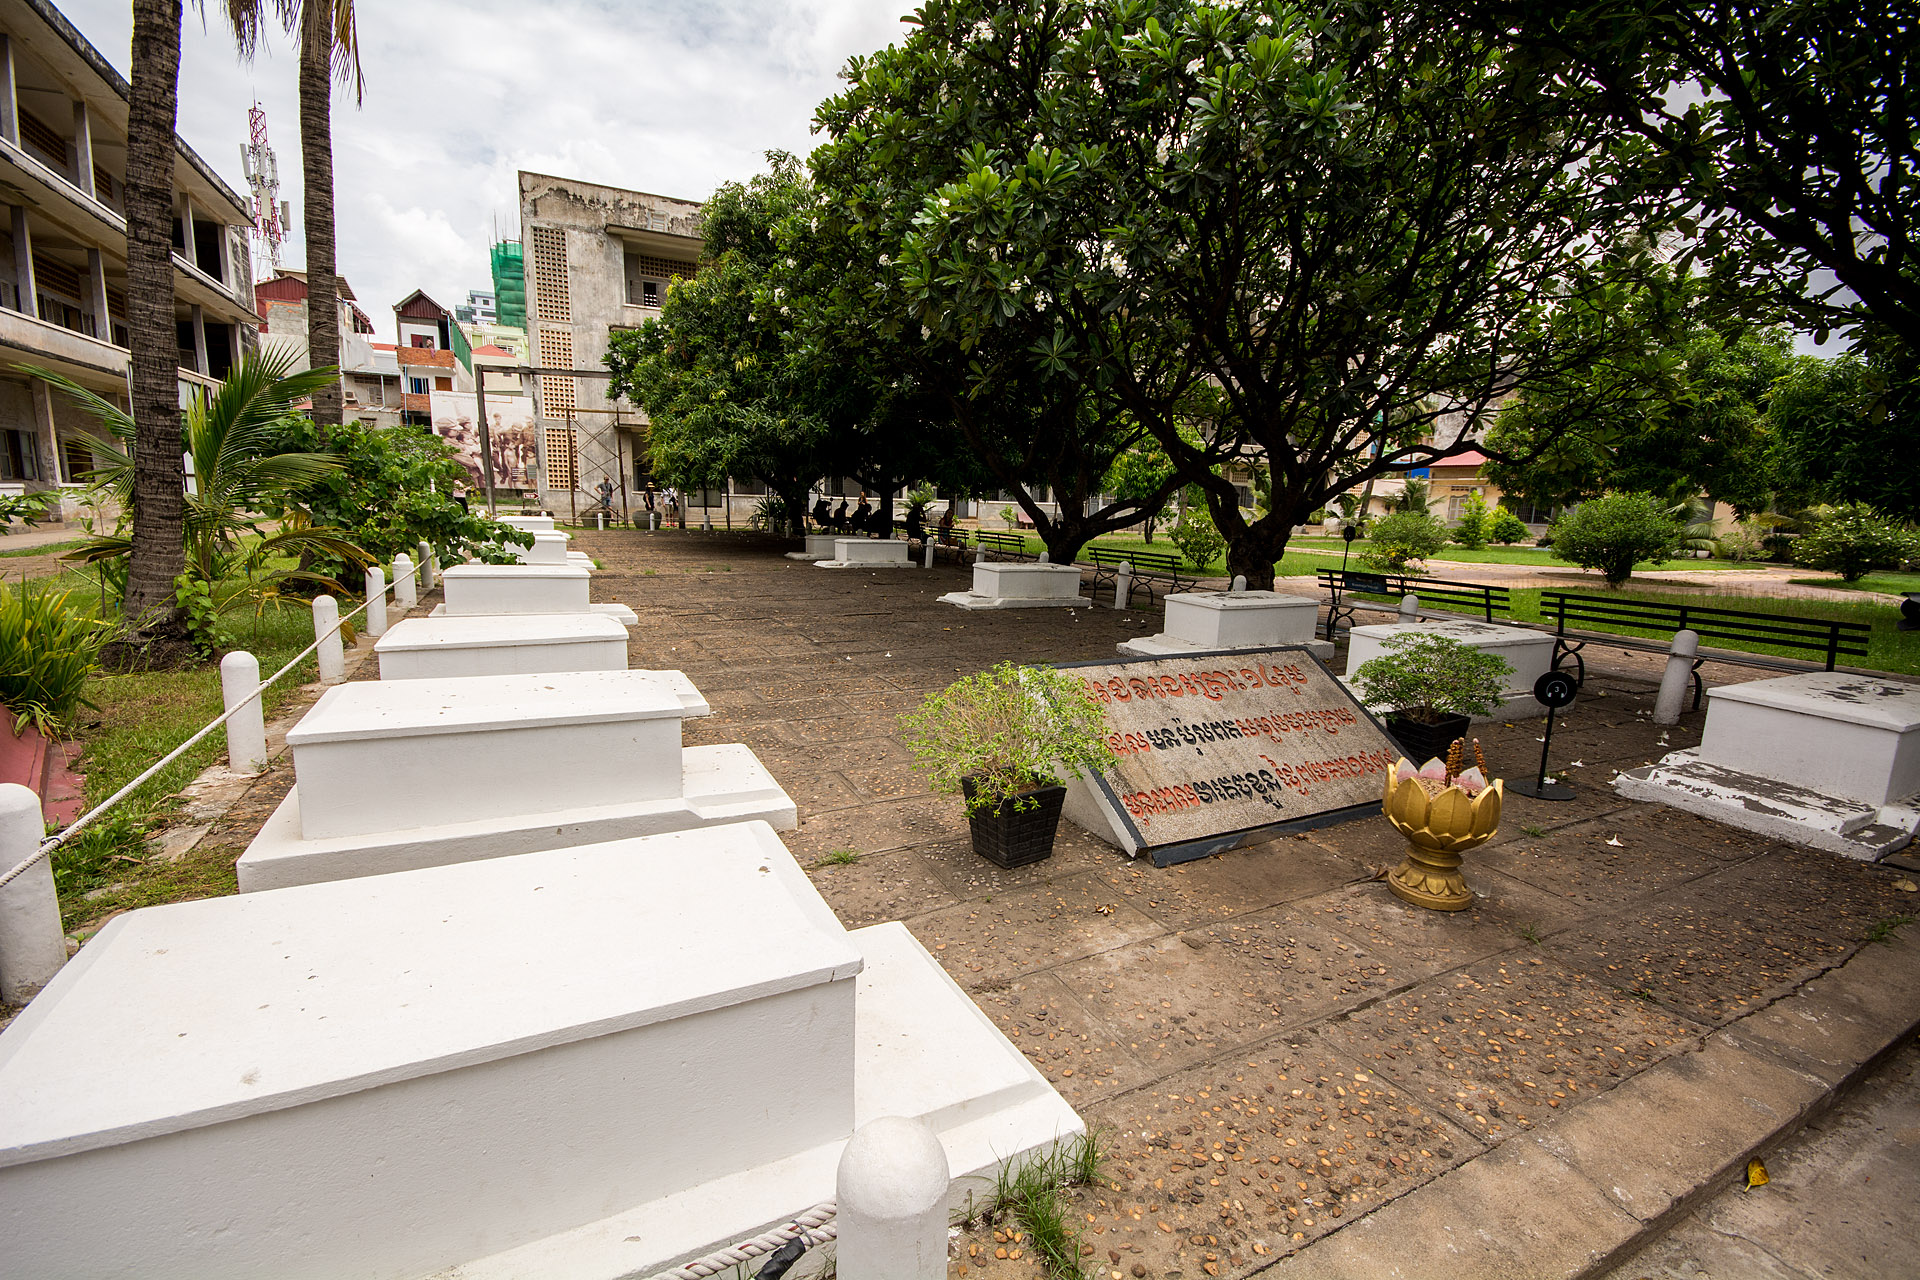 Graves of the final fourteen victims